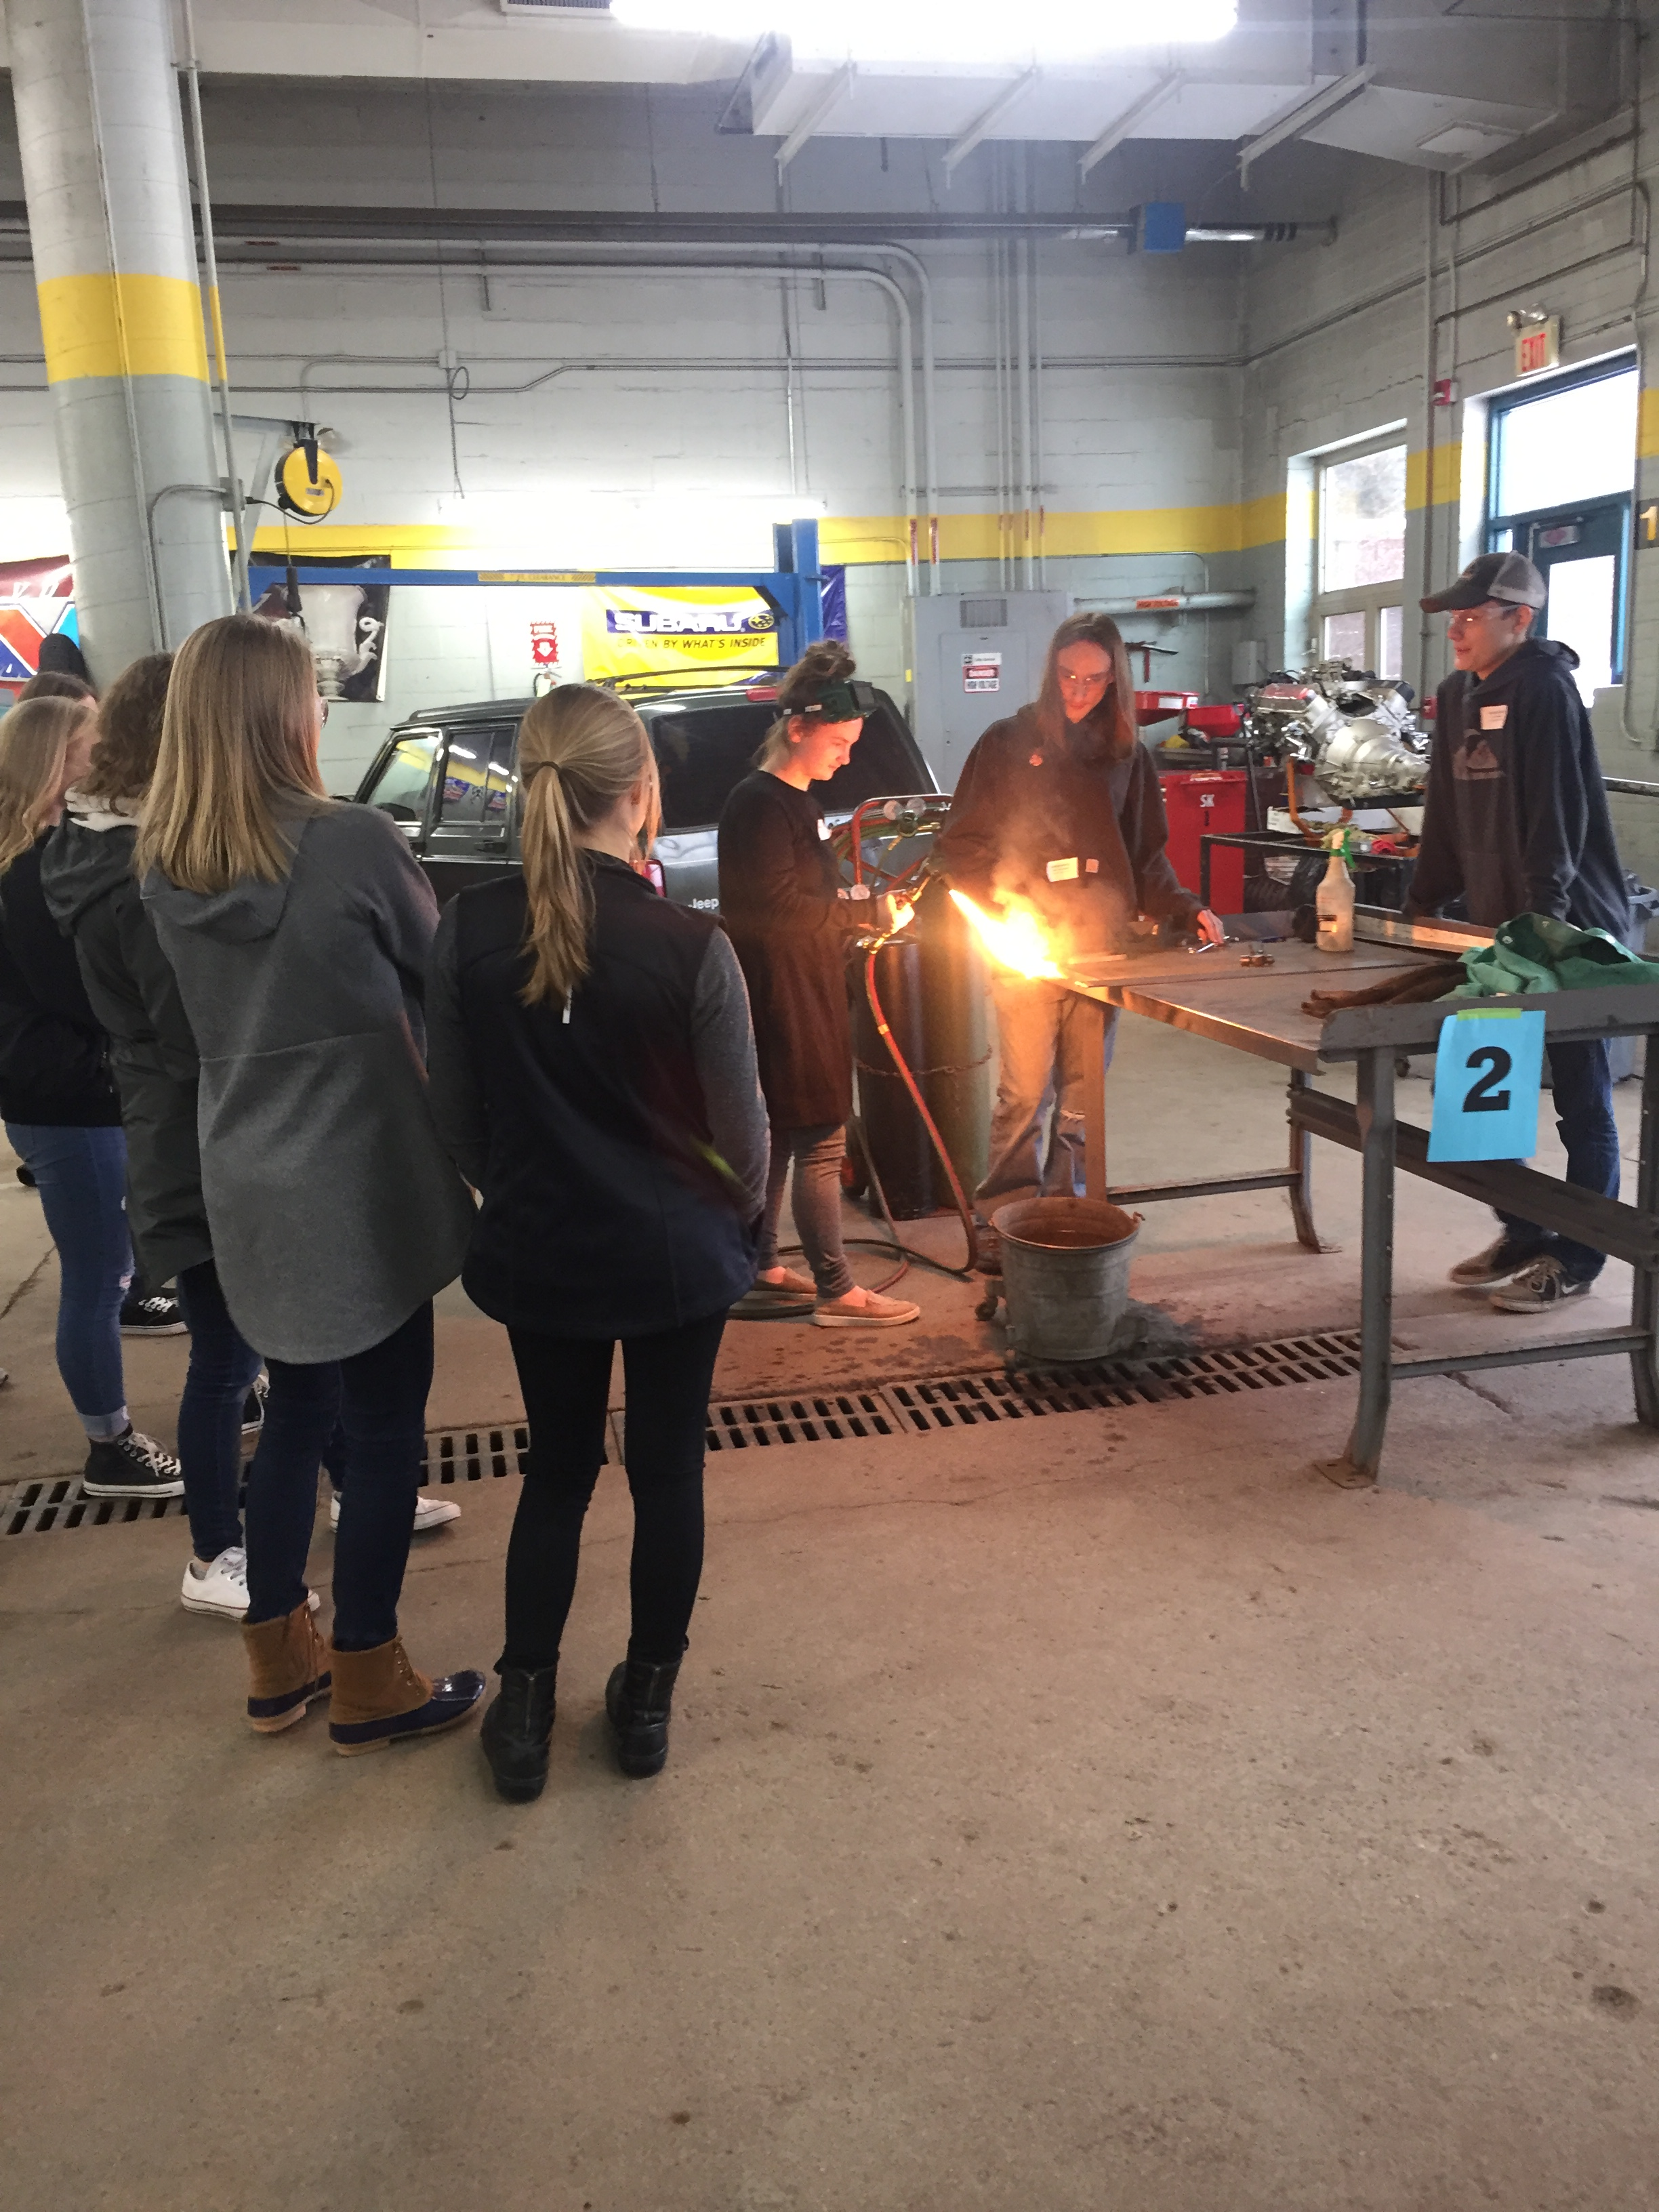 Automotive class with acetylene torch